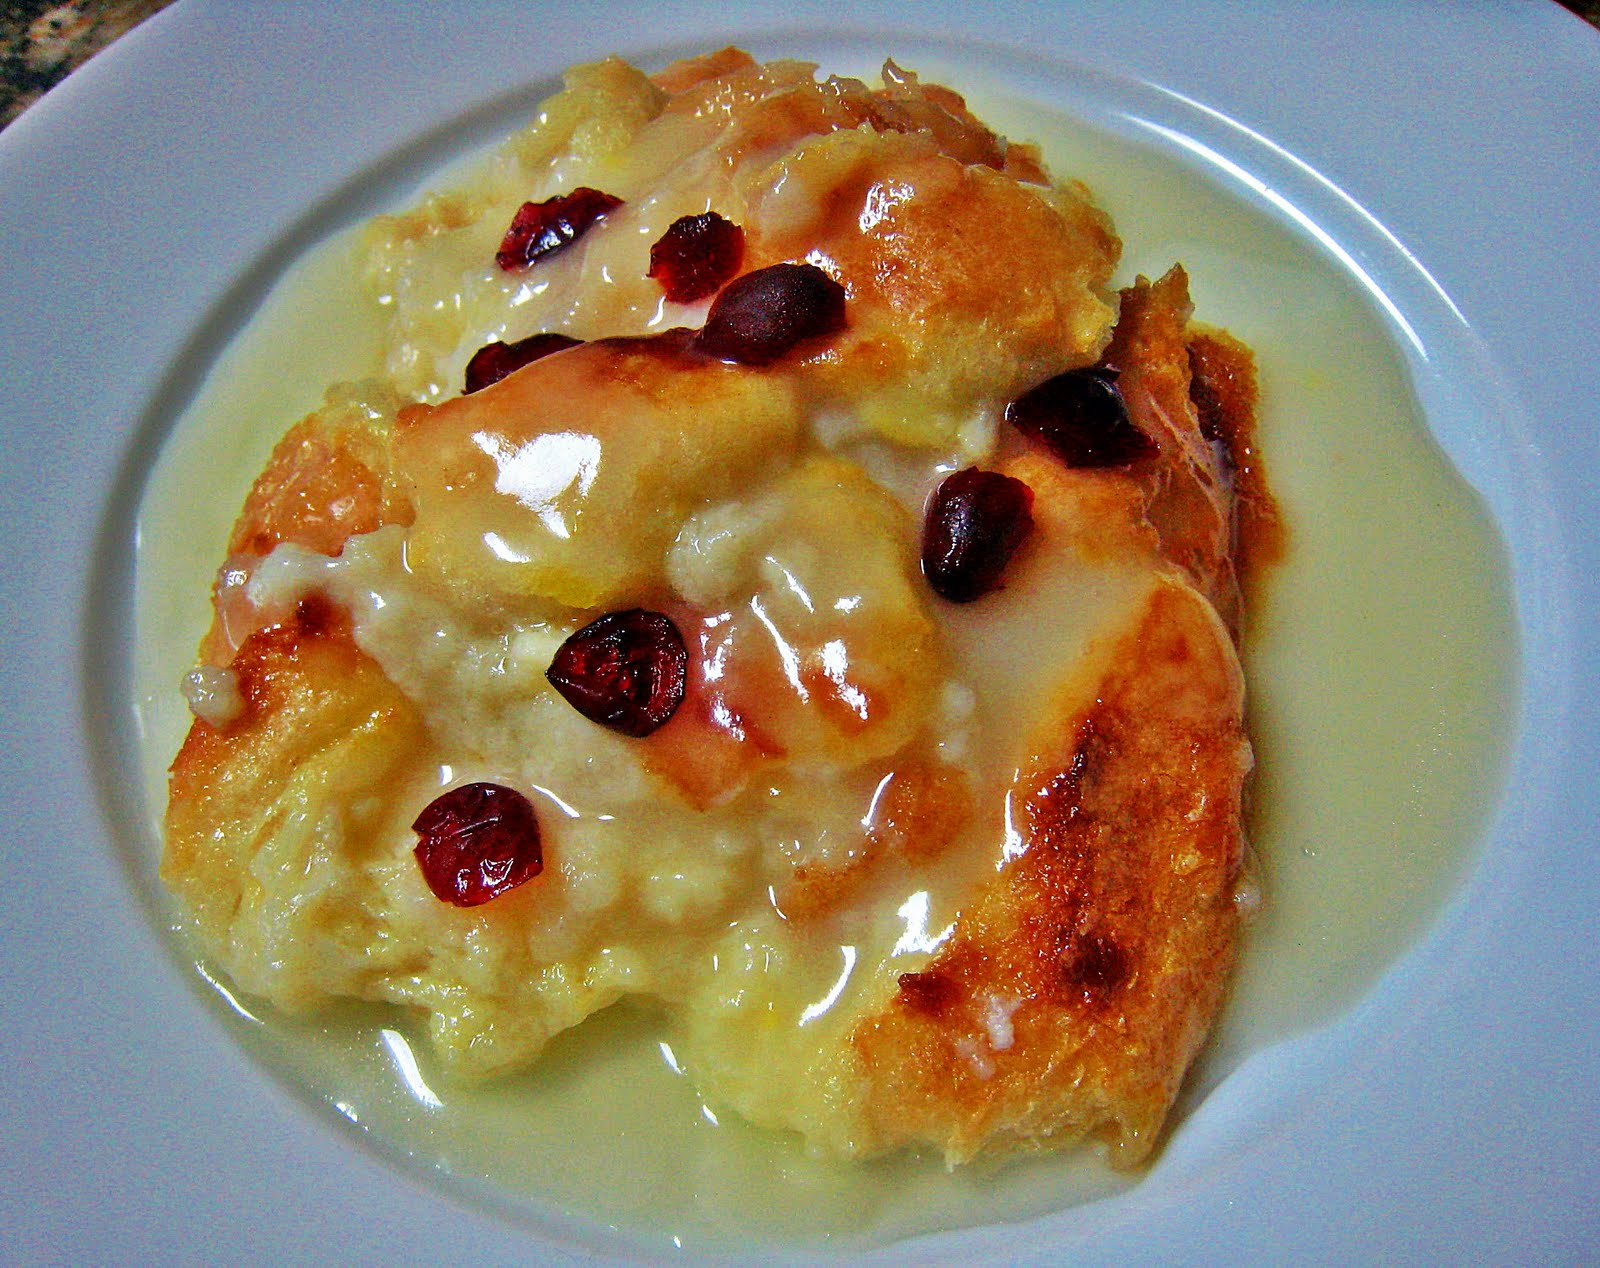 ... LOVE by..... The Burmese Mom: Bread Pudding with Rum Sauce